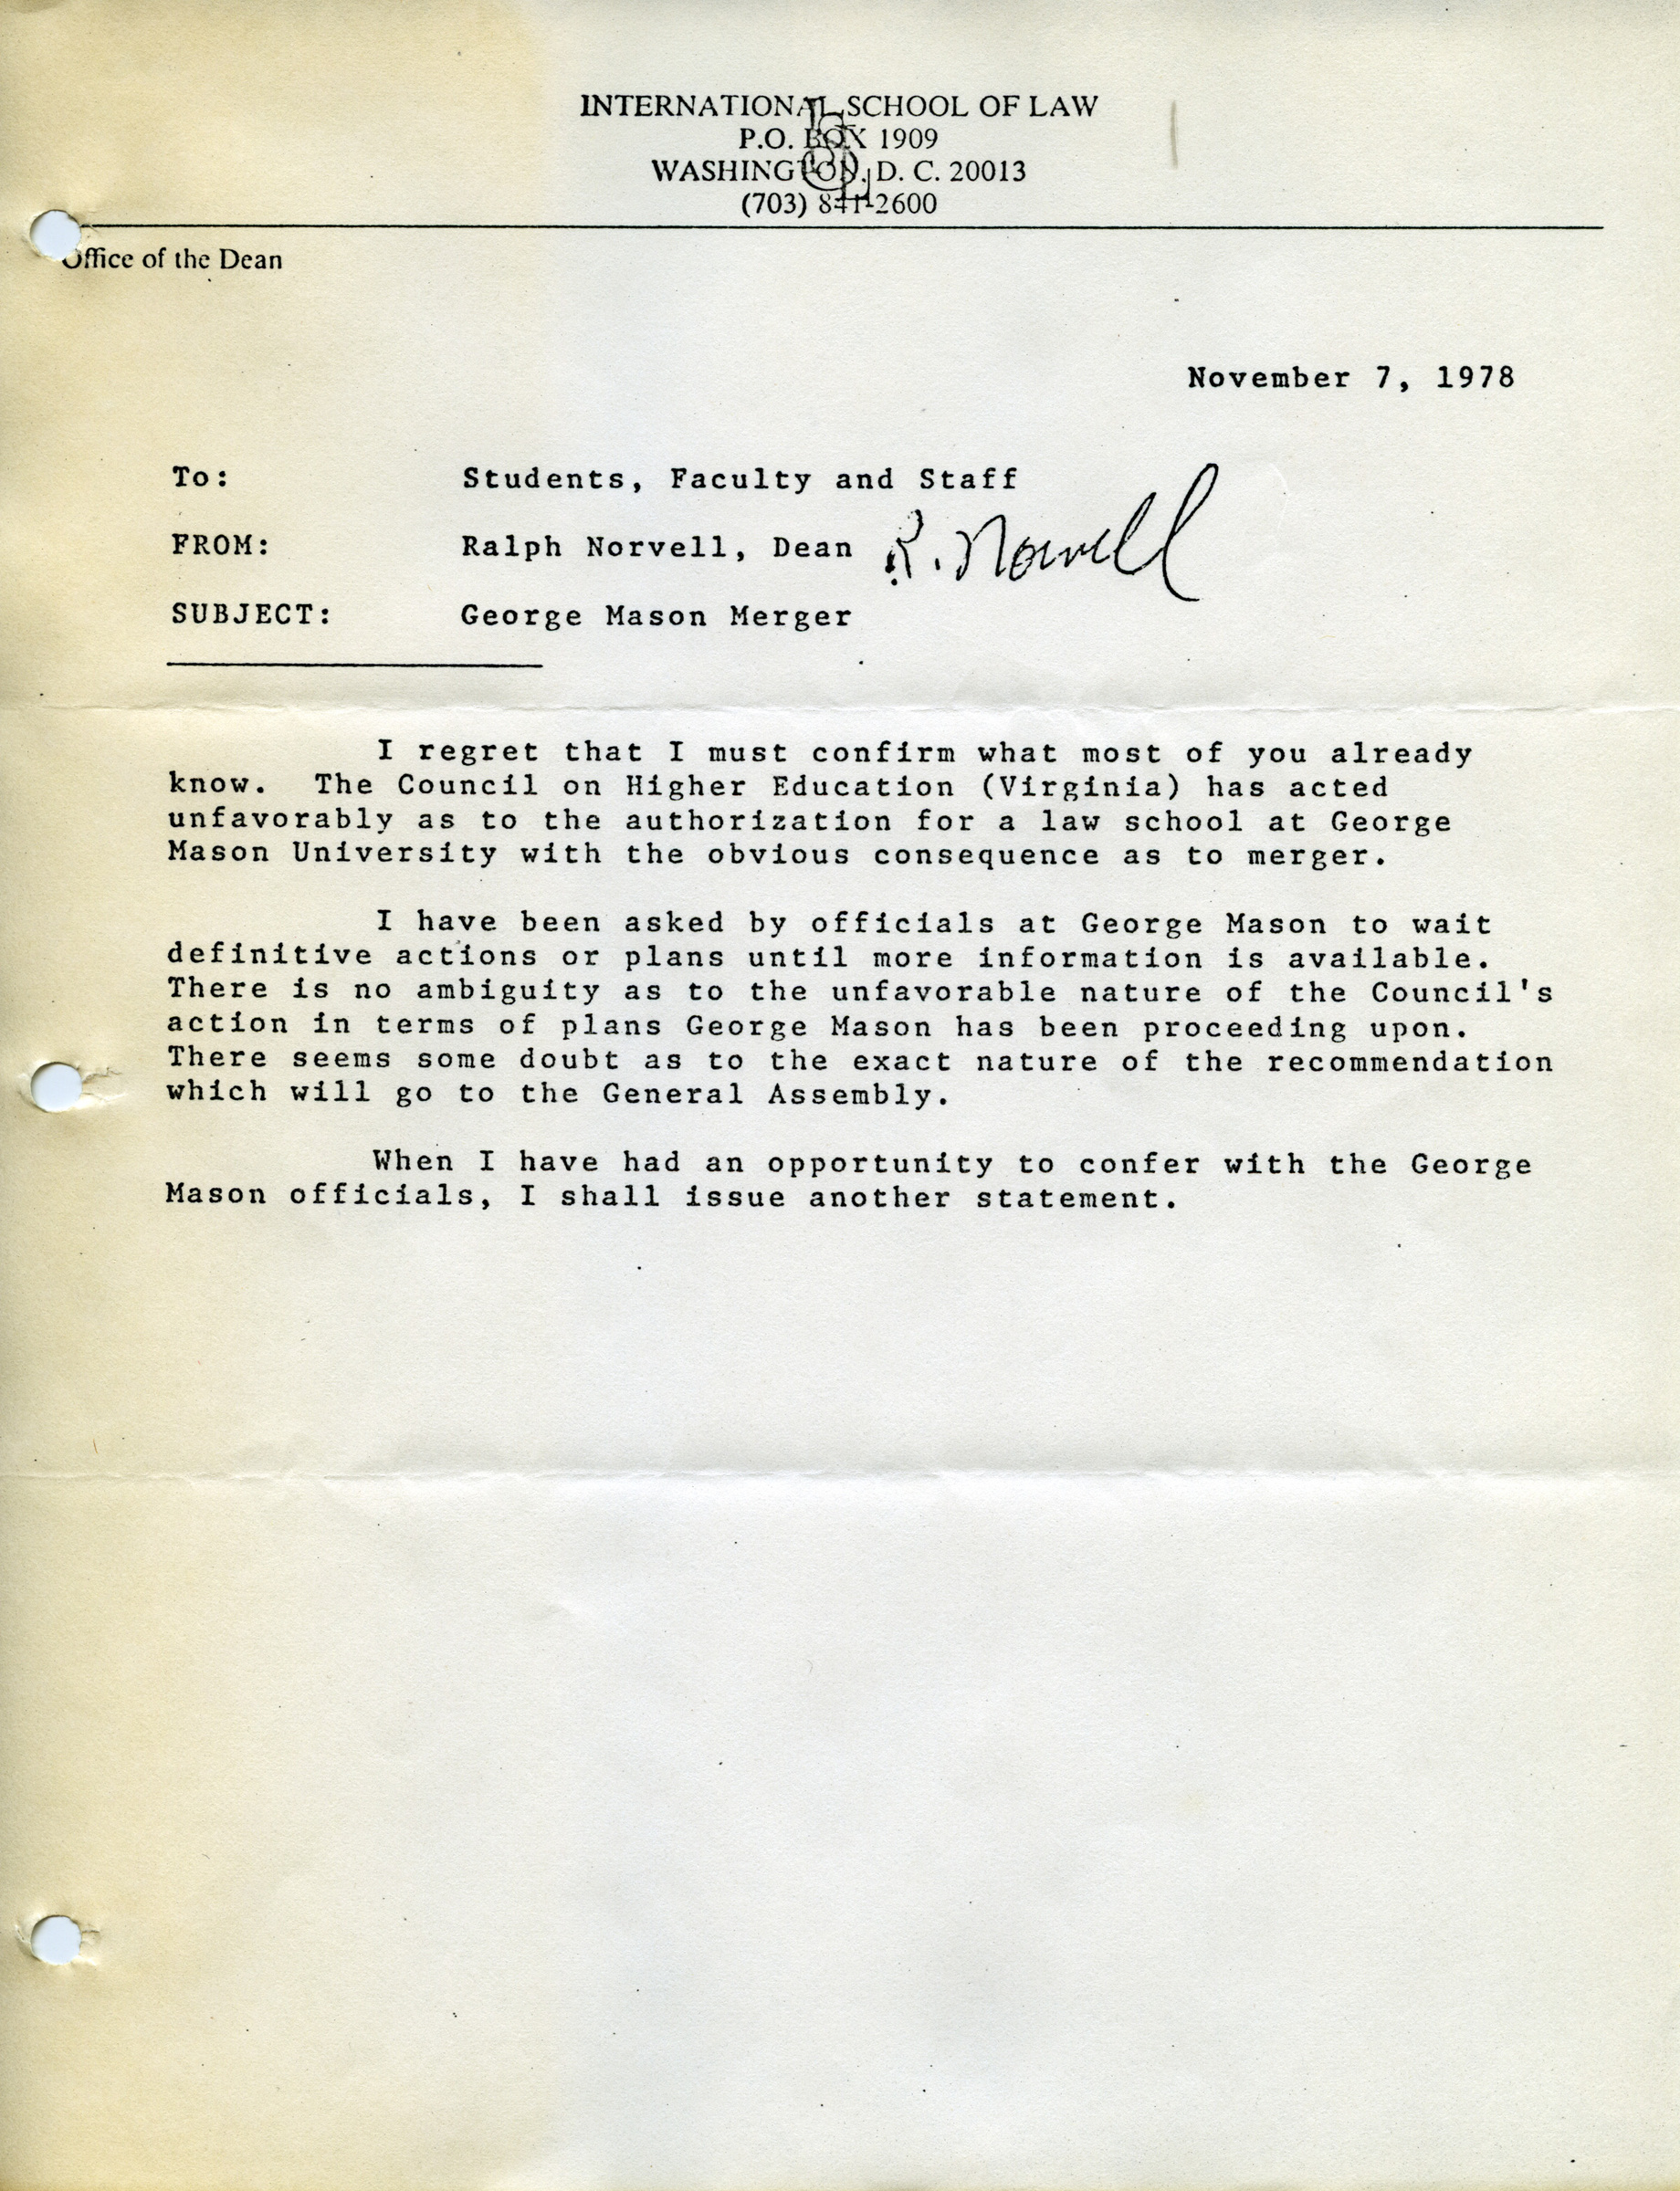 daniel_smith_norvell_to_students_faculty_staff_11_7_1978.jpg